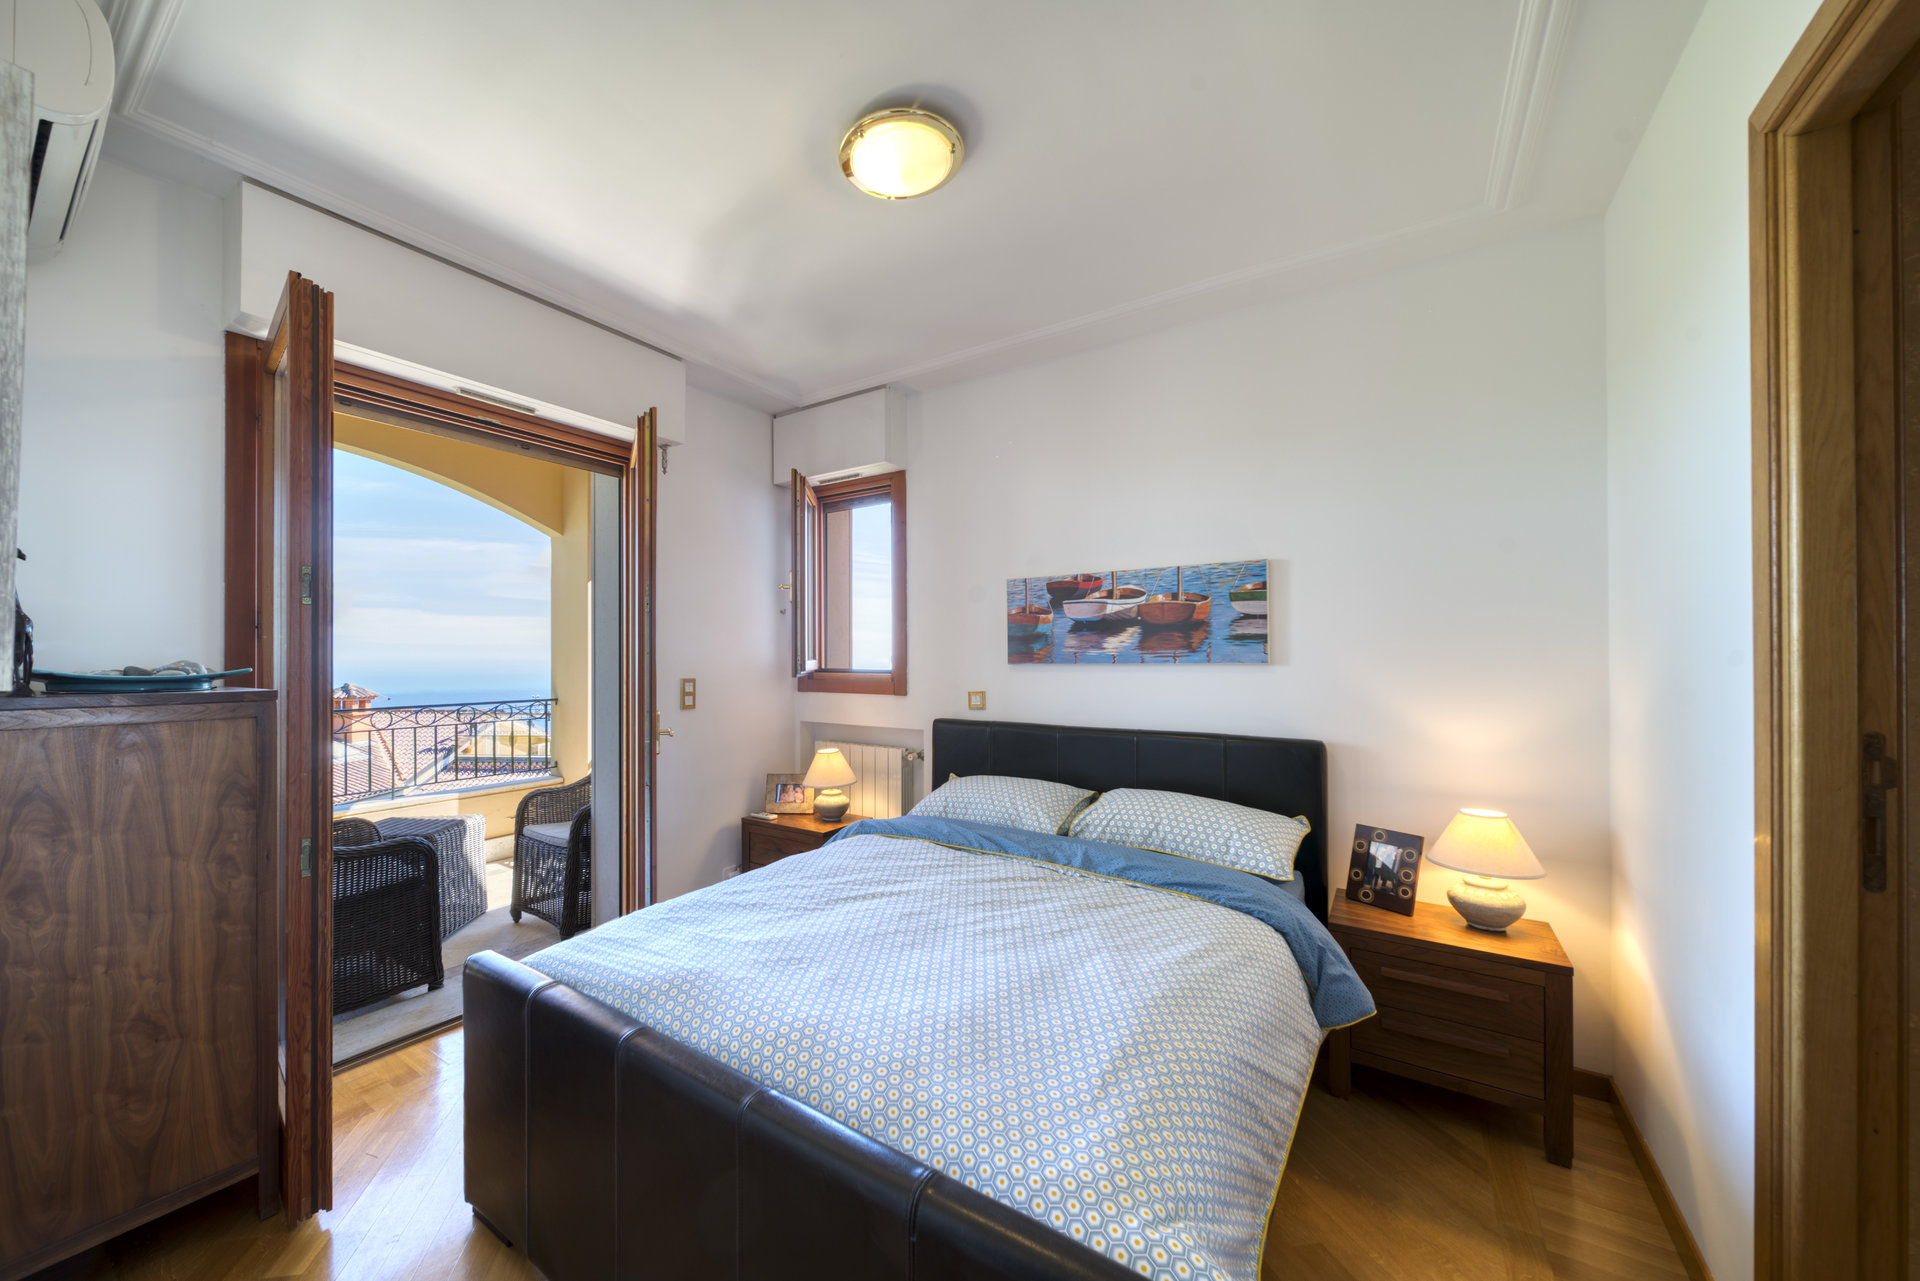 Eze - 2 bedrooms sea view top floor 76m2